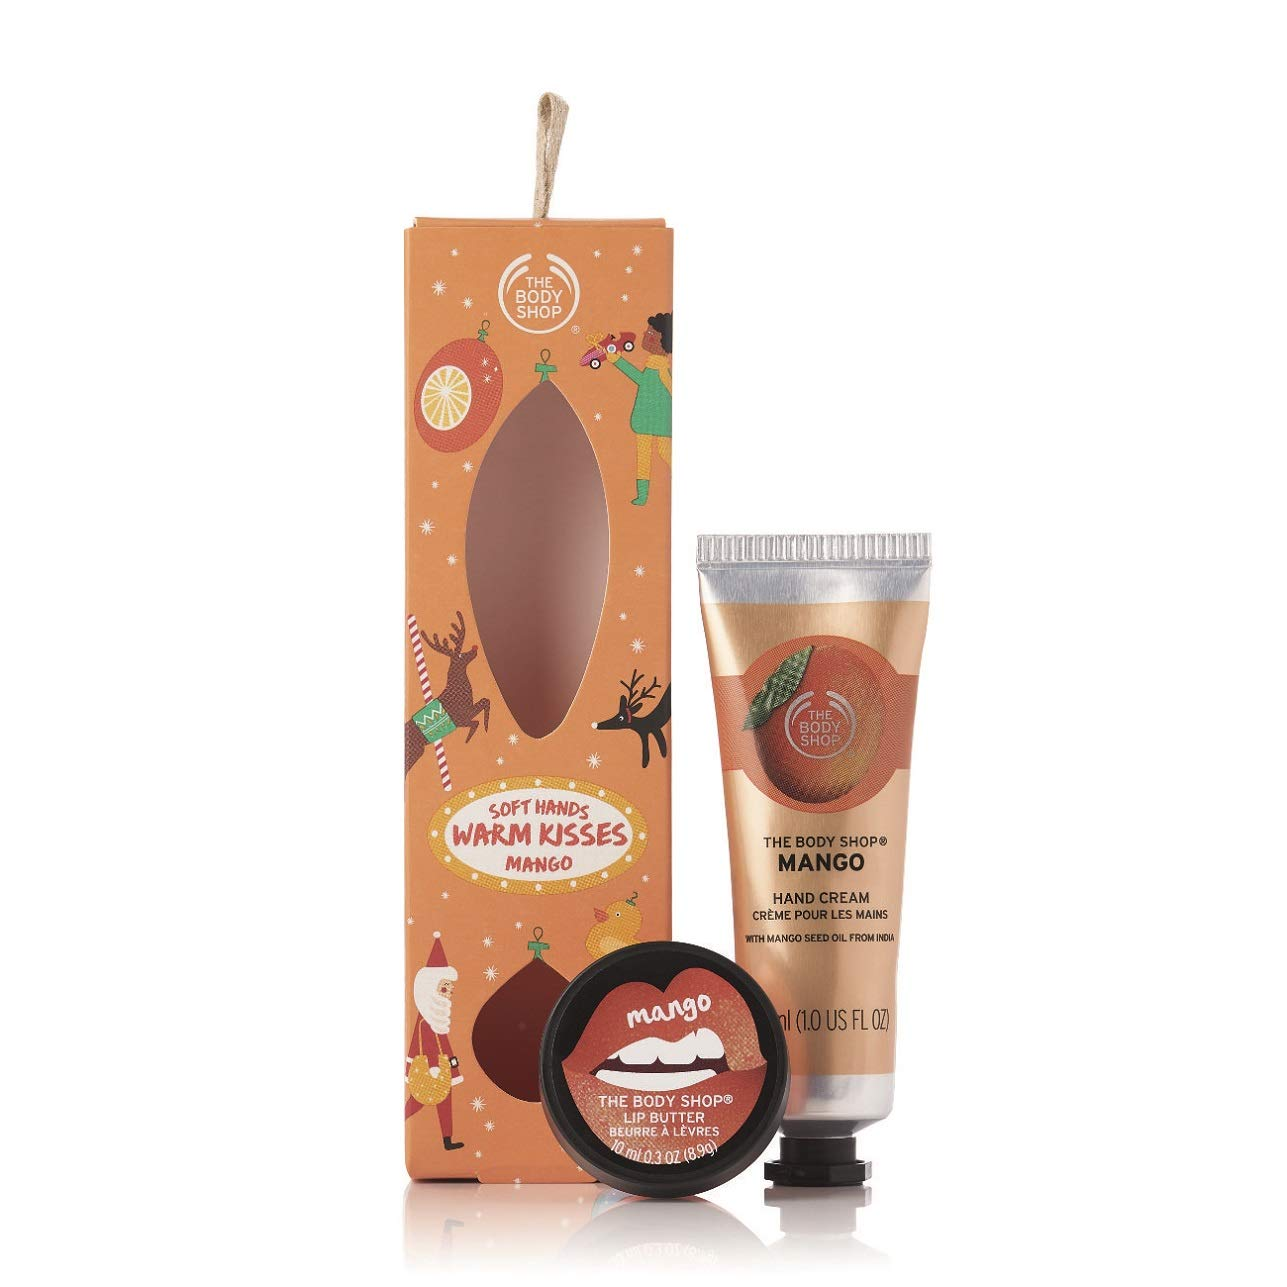 The Body Shop Mango Duo Gift Set, Includes Mango Lip Butter & Hand Cream, Feel Smooth & Moisturized This Holiday Season, Both Are Enriched With Community Trade Mango Seed Oil From India